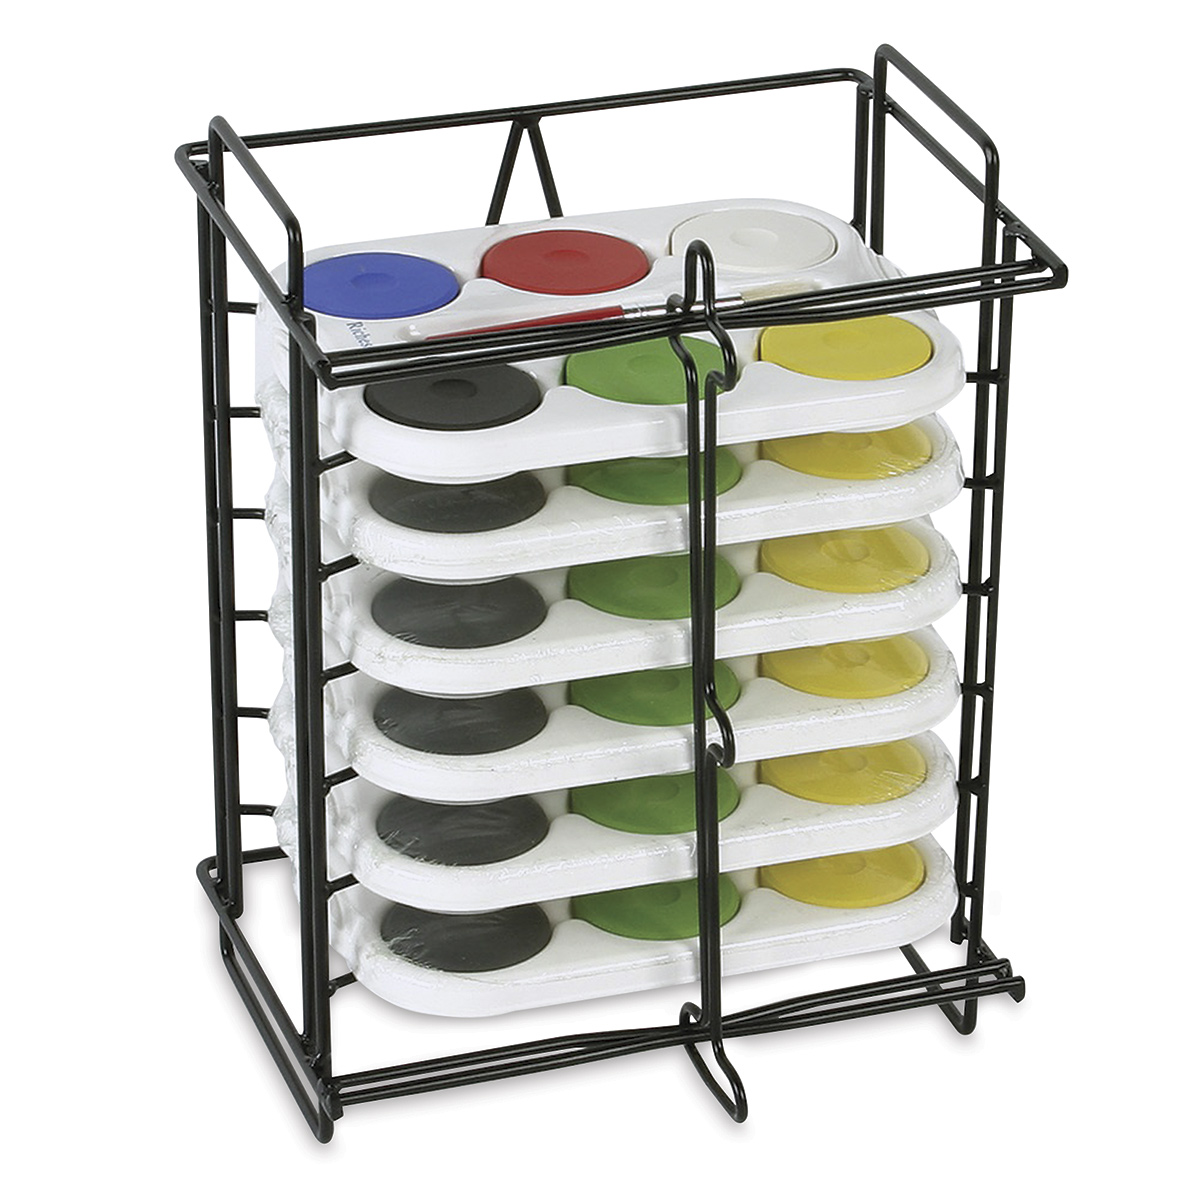 Richeson Tempera Cakes and Sets - Small Tempera Rack with 6, 6-Color Sets